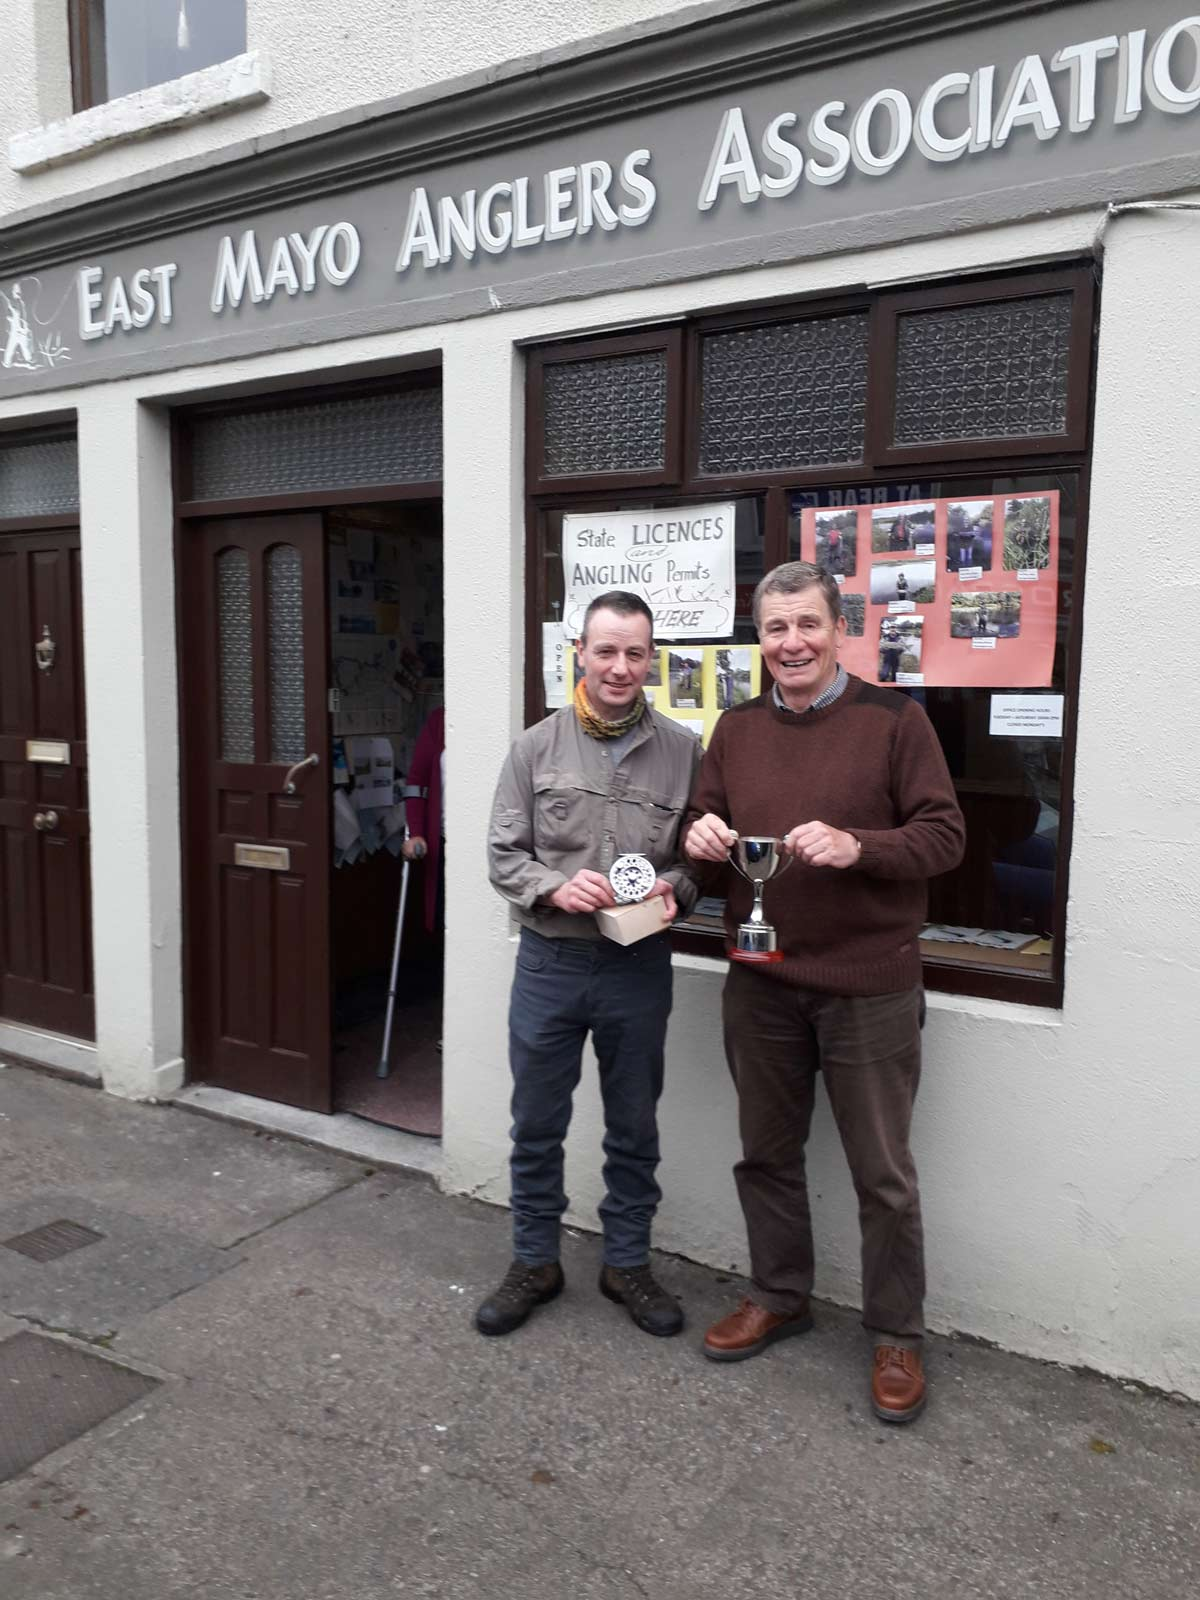 David Hawley, Ballina being presented with the Swinford 250 Perpetual Cup (and 1st prize sponsored by Tiernan Bros. Foxford) by Secretary Paddy McNulty and committee member Michael Tiernan. It is an EMAA initiative to encourage catch and release.